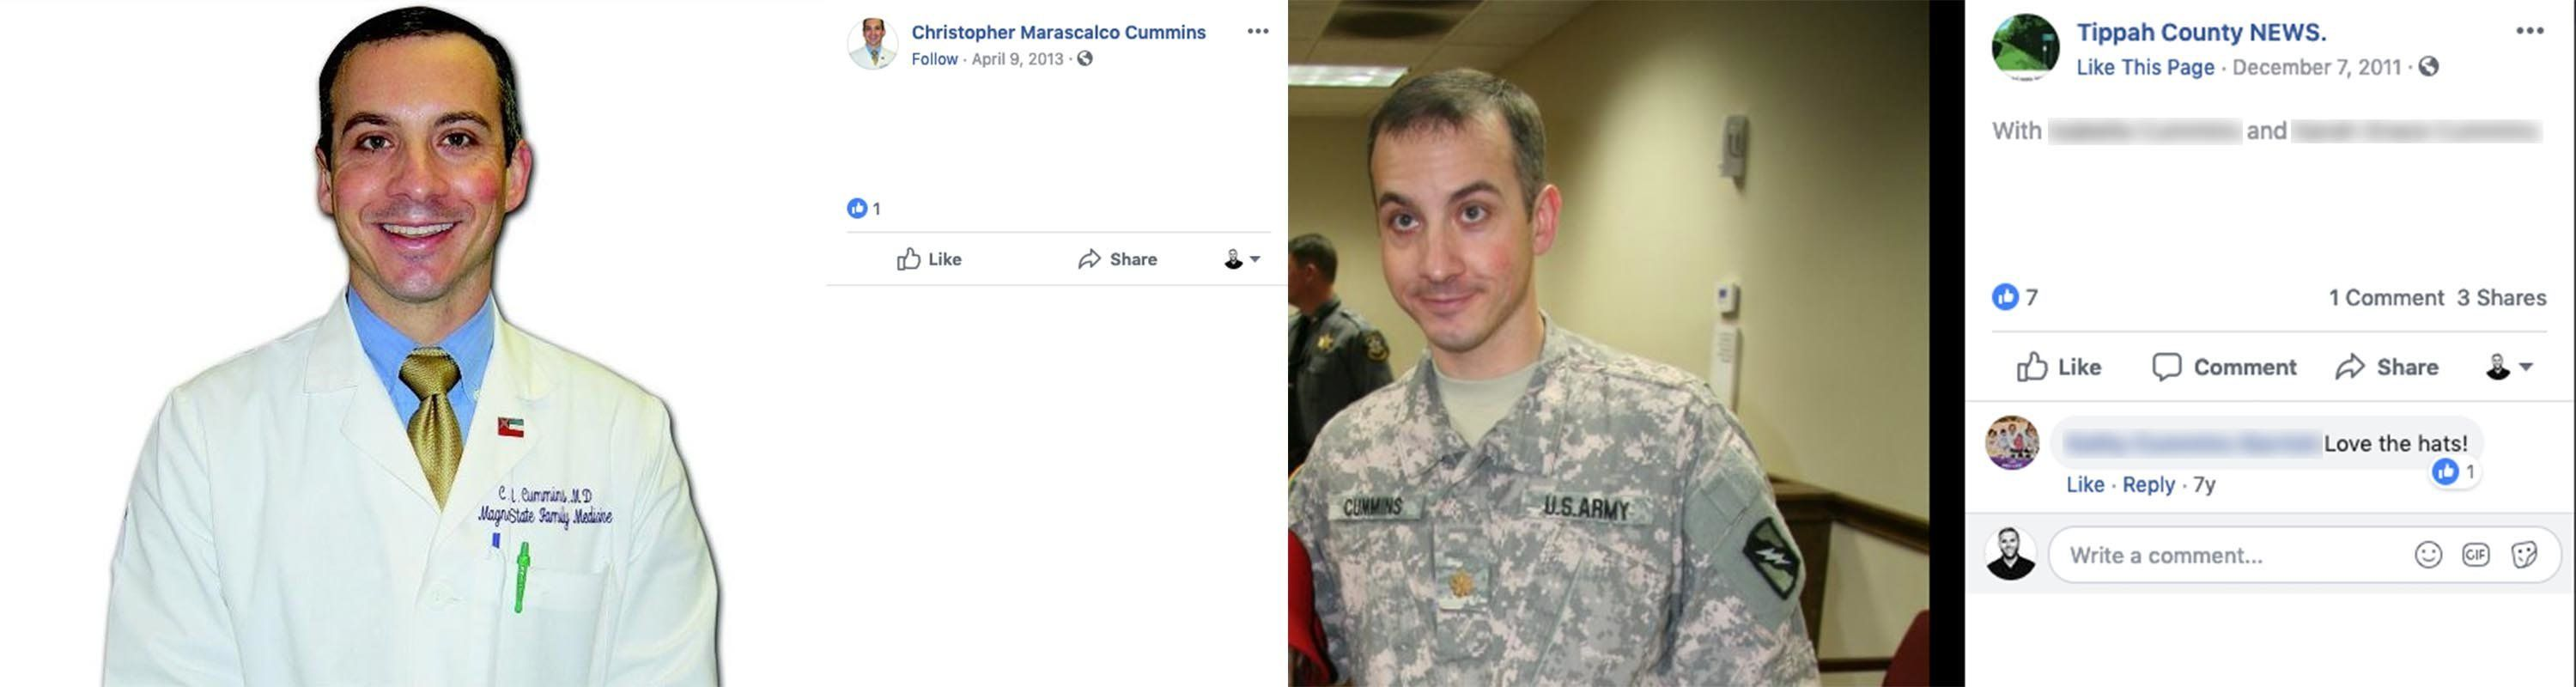 Christopher Cummins, a lieutenant colonel physician in the Army Reserve. Many of his biographical details match those of